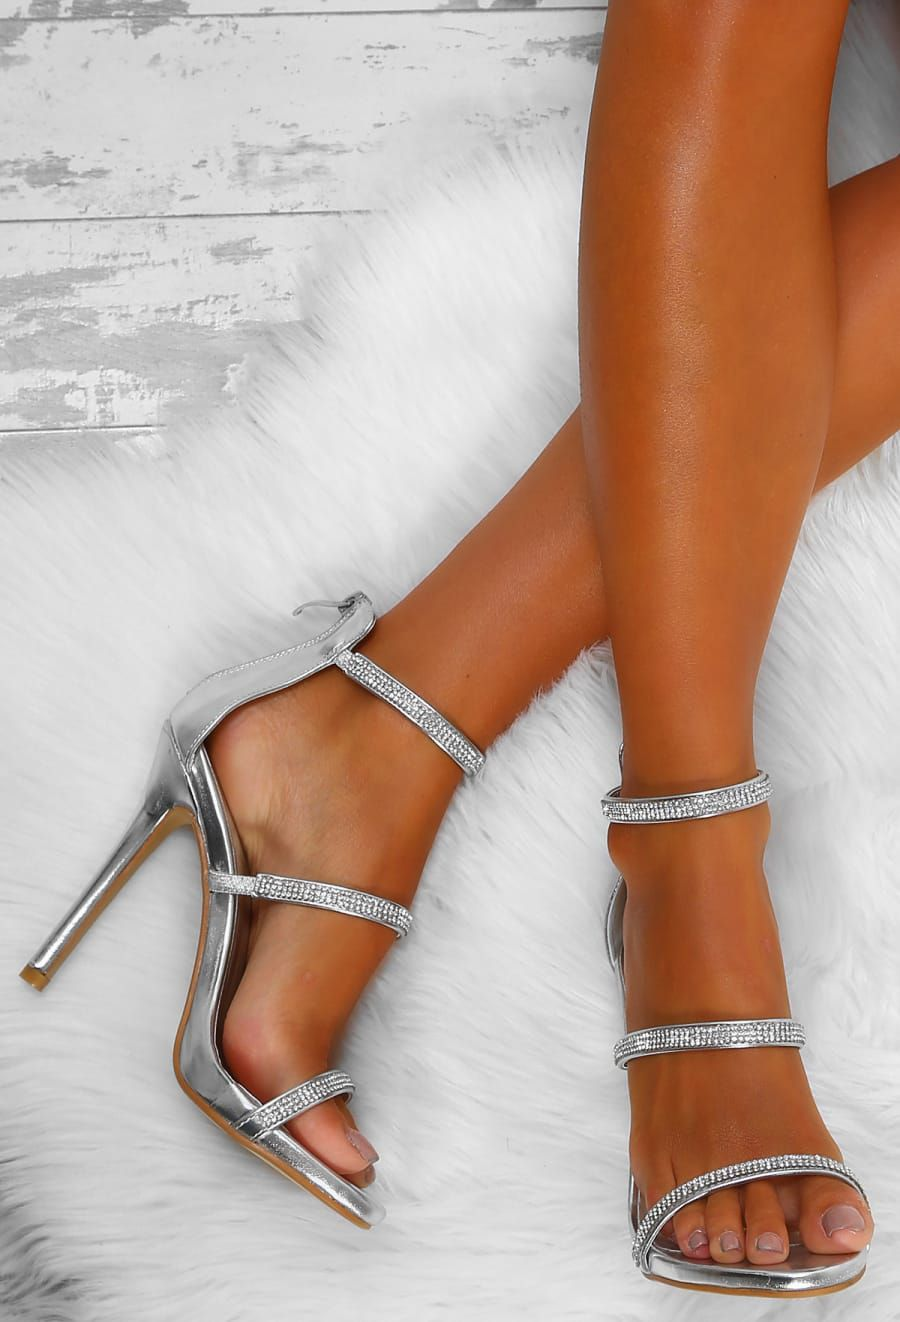 cd43a9e56be Deep Thoughts Silver Diamante Strap Stiletto Heels - UK 3 in 2019 ...